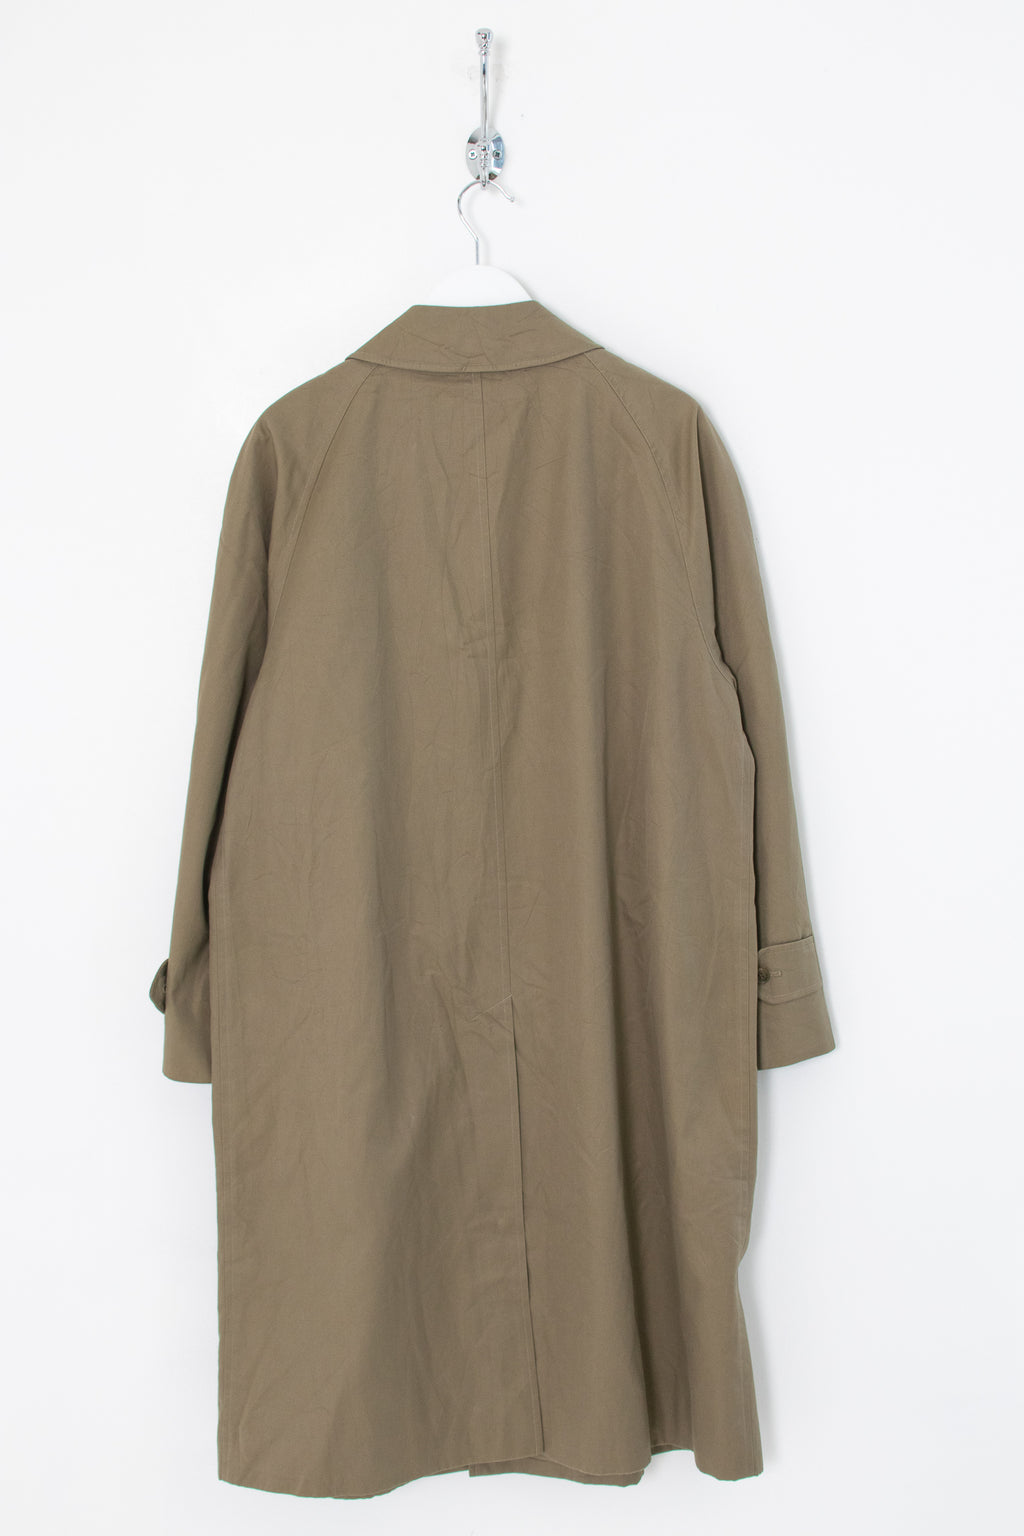 Burberry Trench Coat (L)